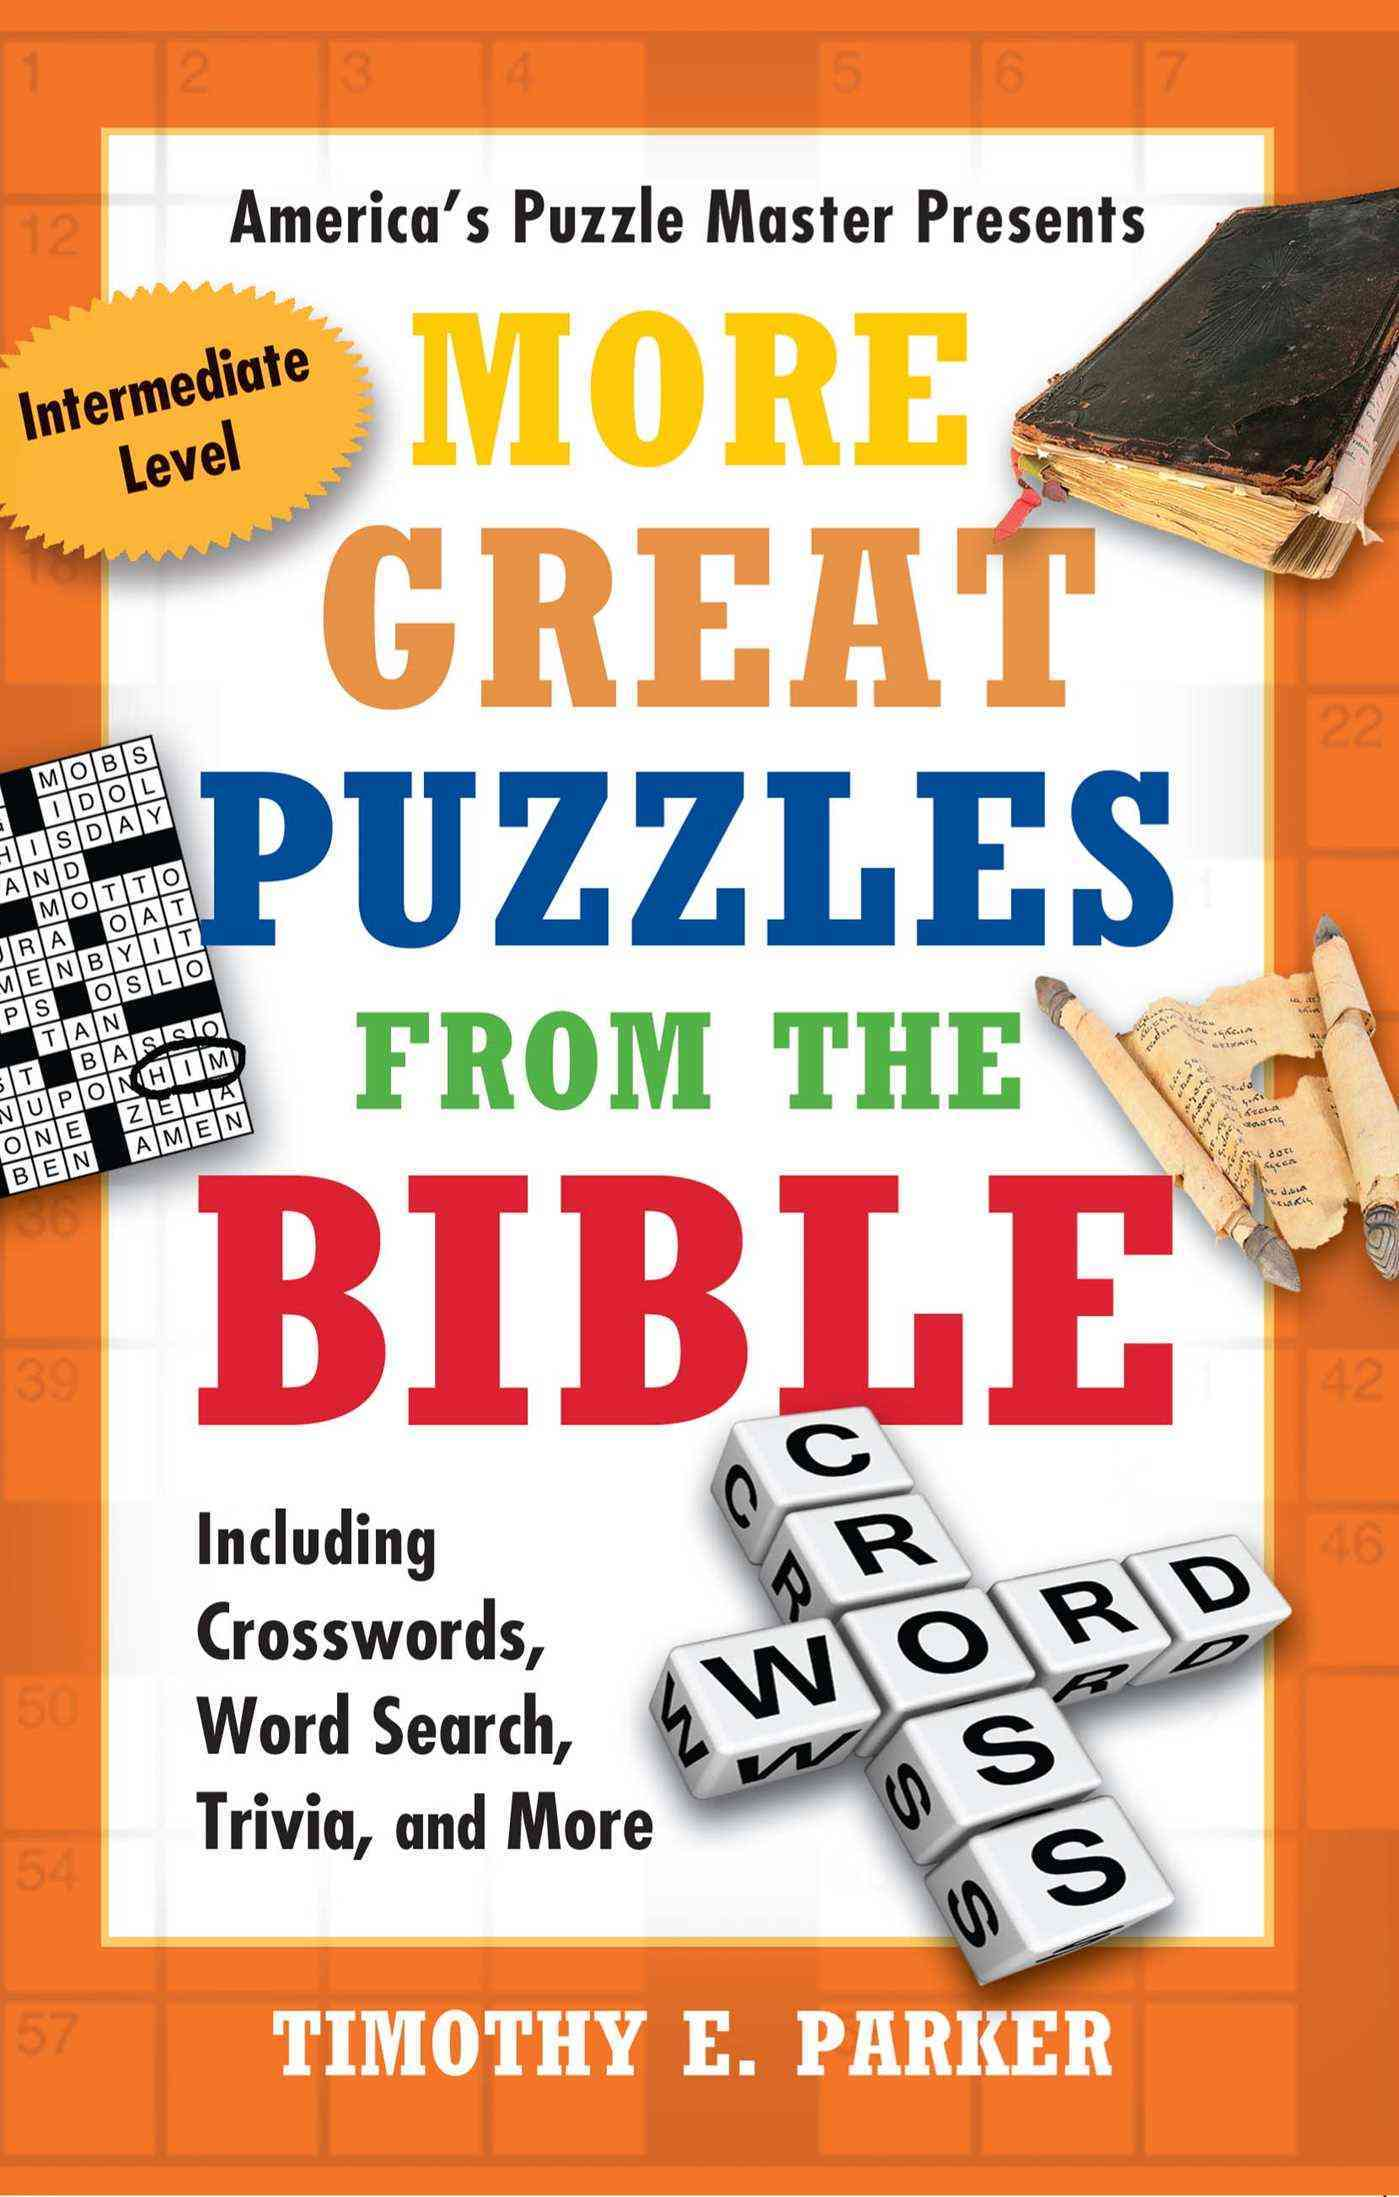 More Great Puzzles from the Bible: Including Crosswords, Word Search, Trivia, and More (Paperback)